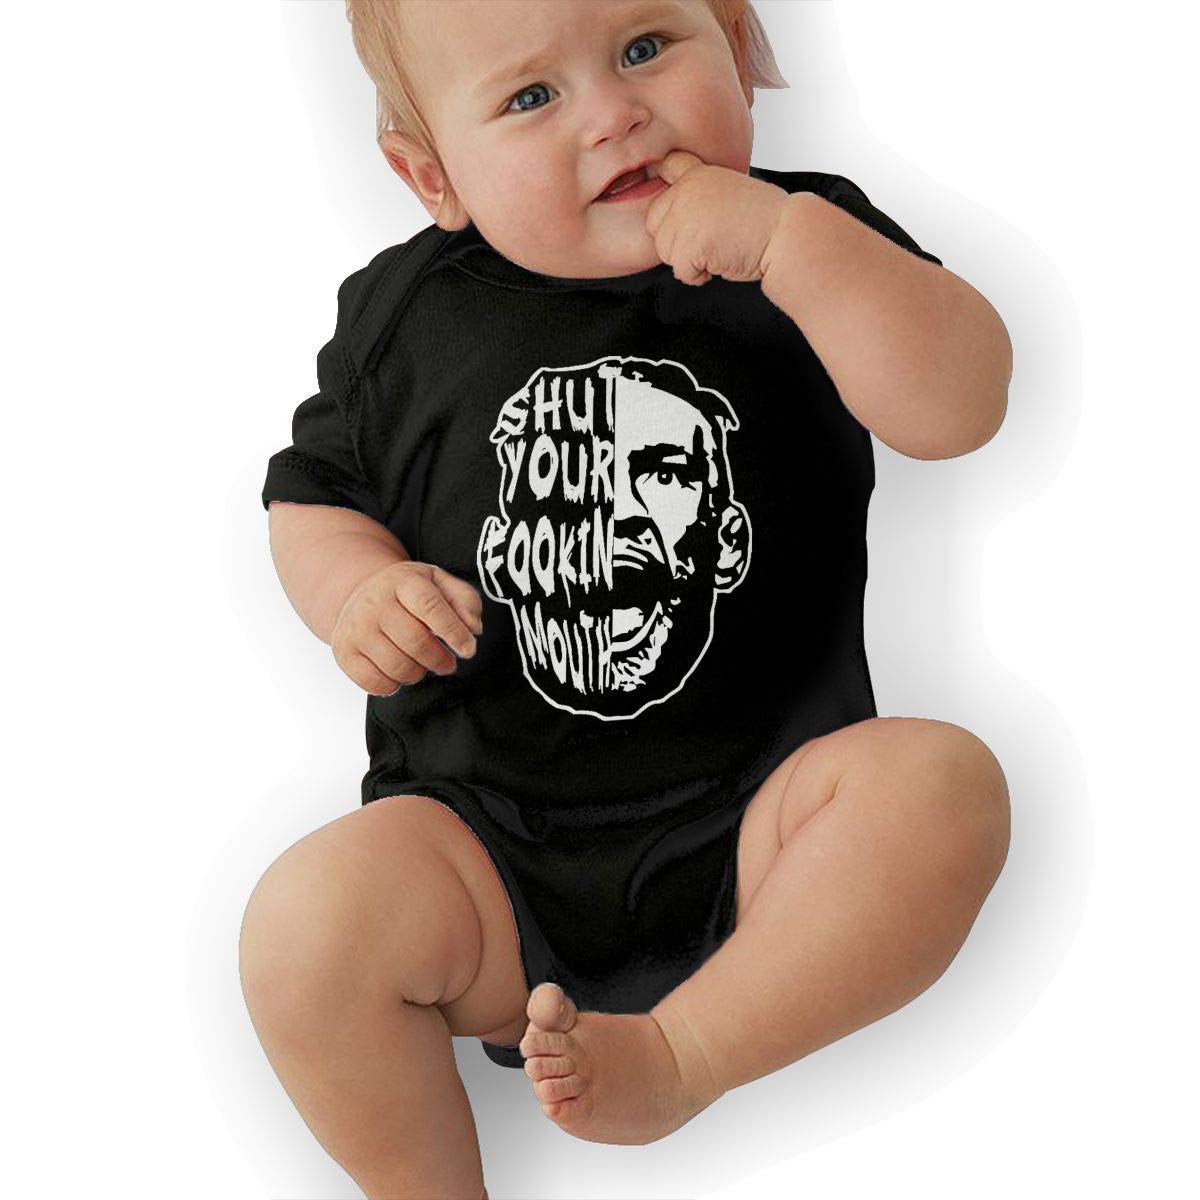 SHWPAKFA Infant Shut Your Mouth Adorable Soft Music Band Jersey Baby Suit,Black,2T